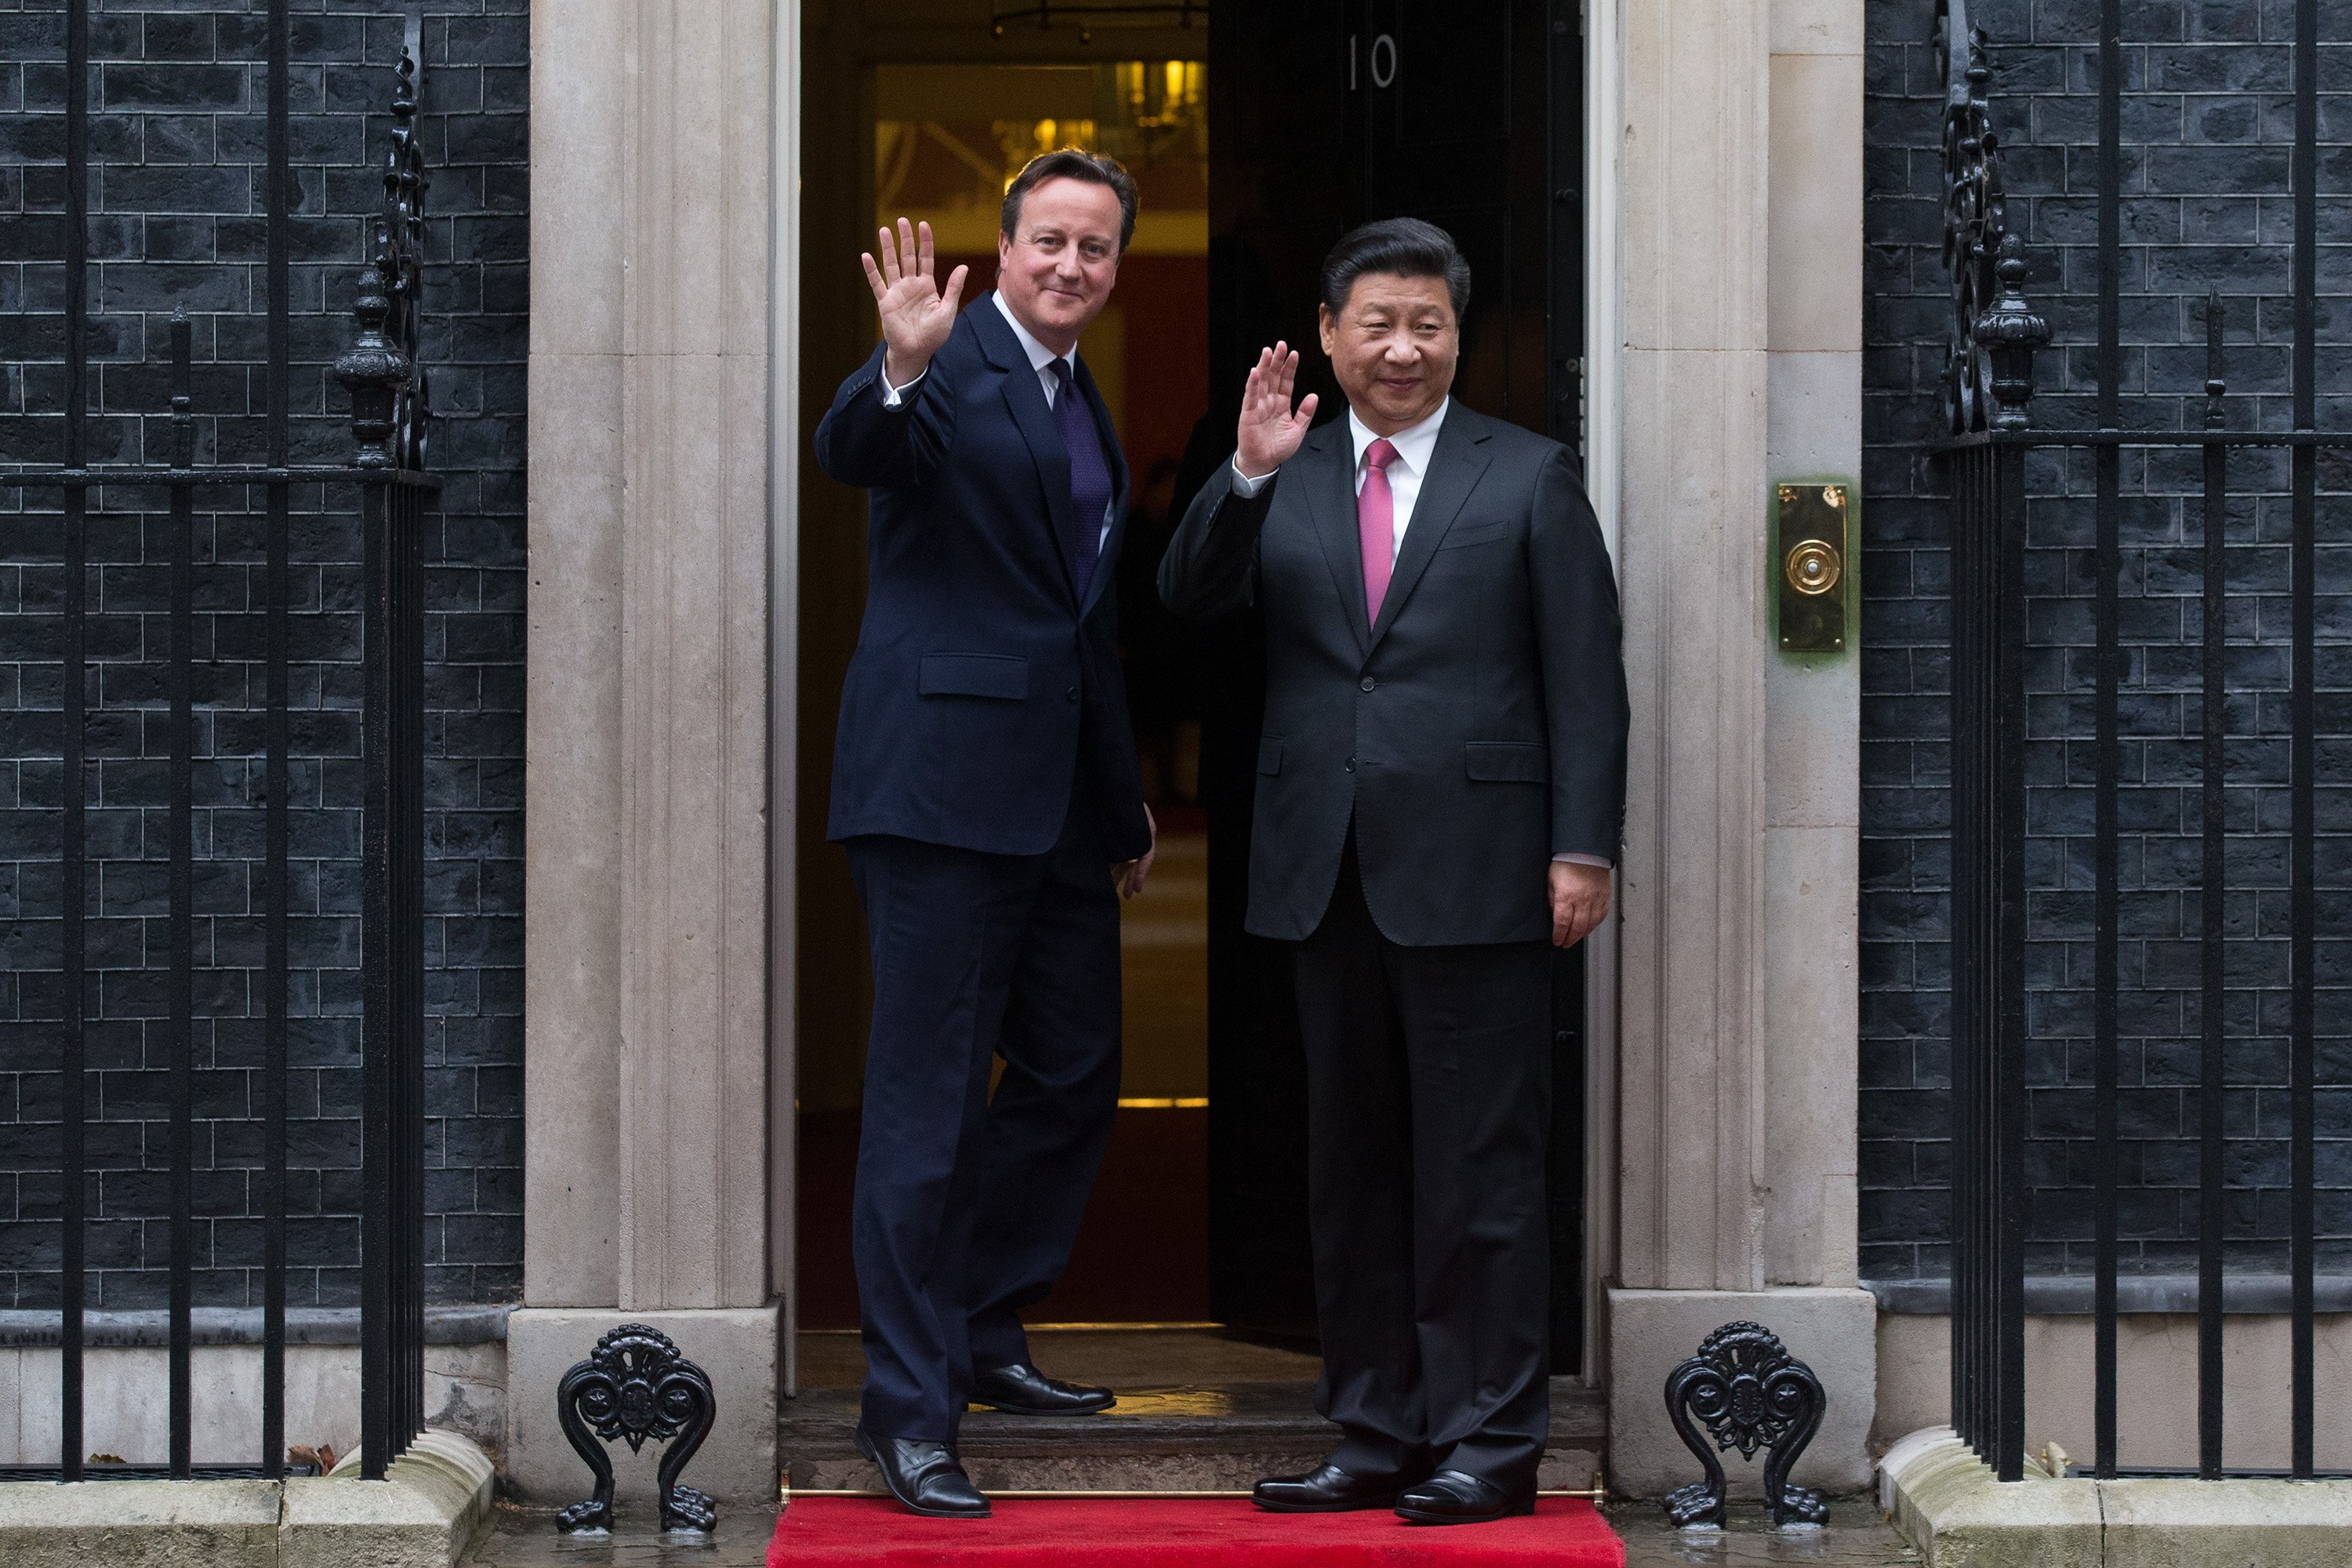 David Cameron greets Xi Jinping as he arrives in Downing Street on Oct. 21, 2015 in London.